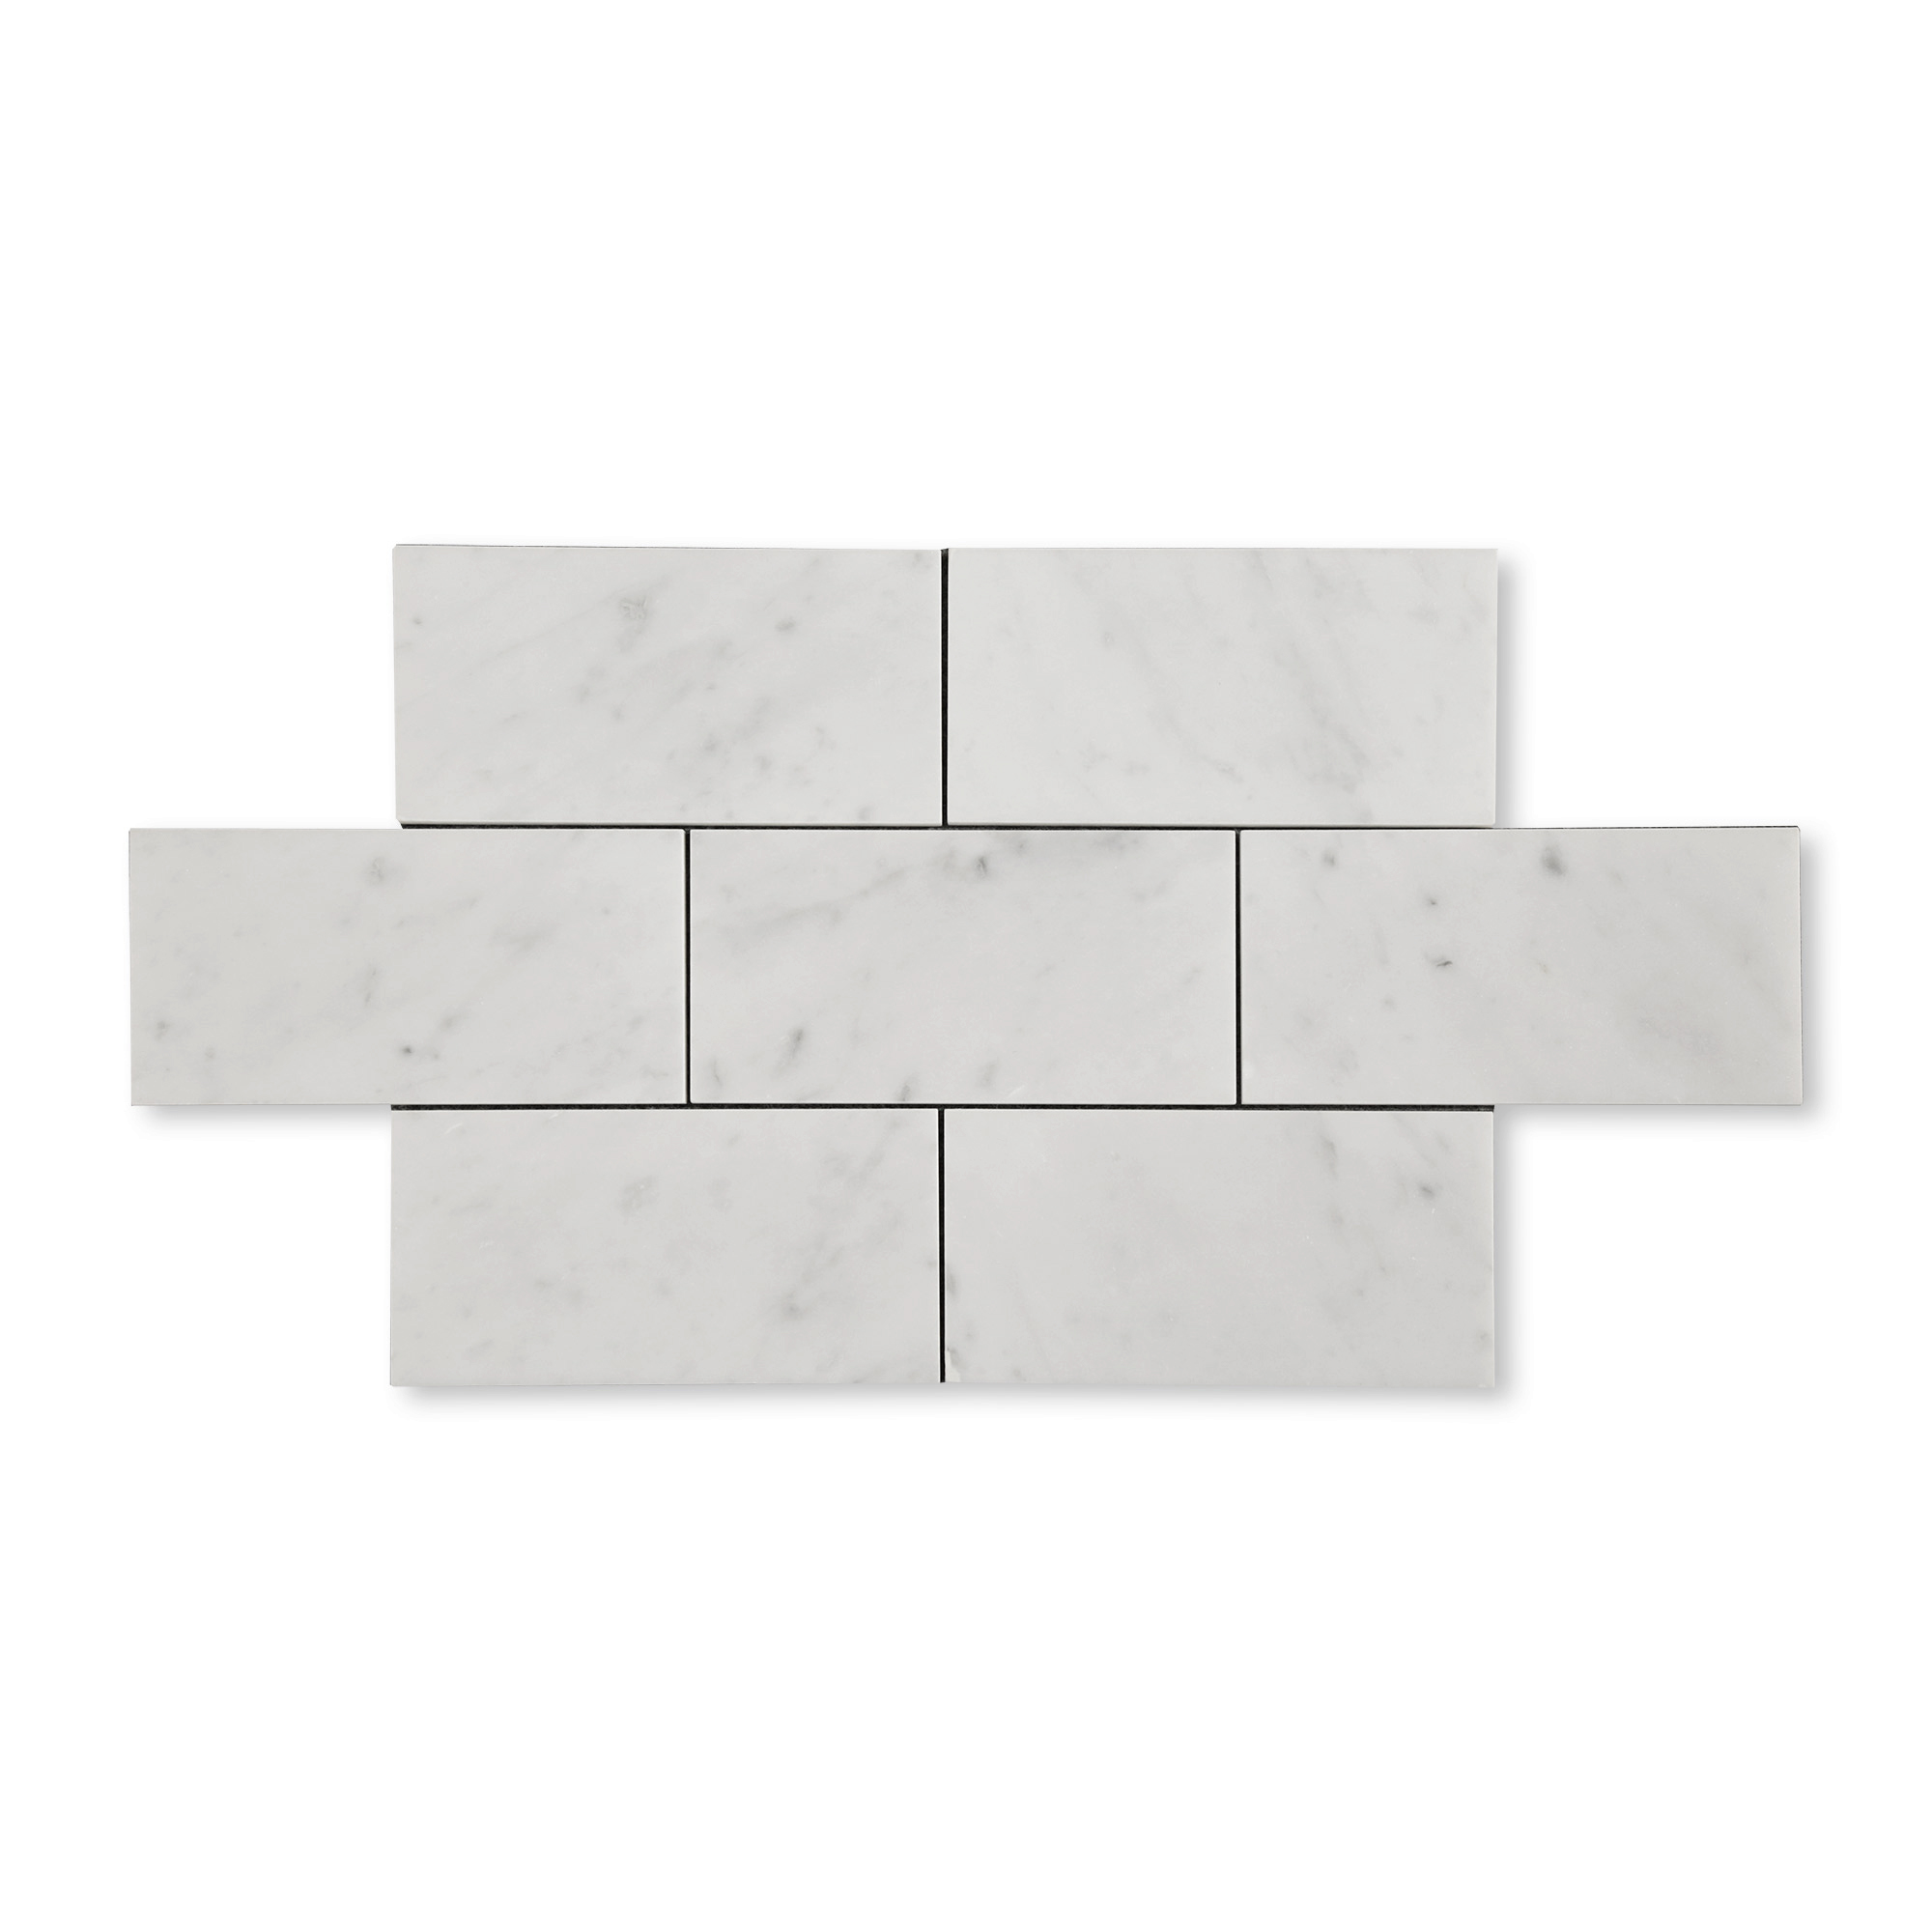 Carrara Bianco Marble - Honed - 4